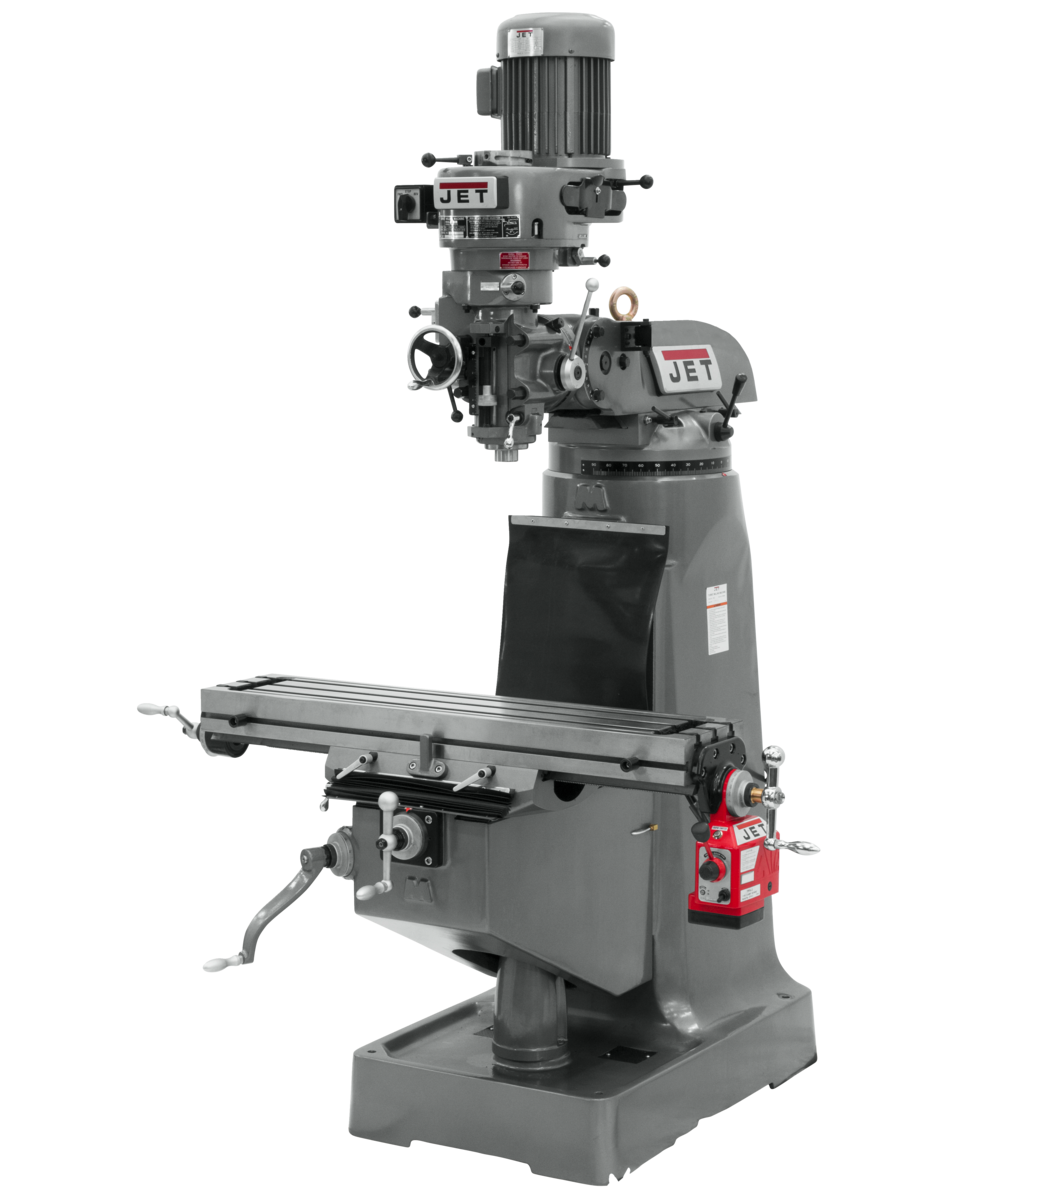 JTM-1 Mill With X-Axis Powerfeed